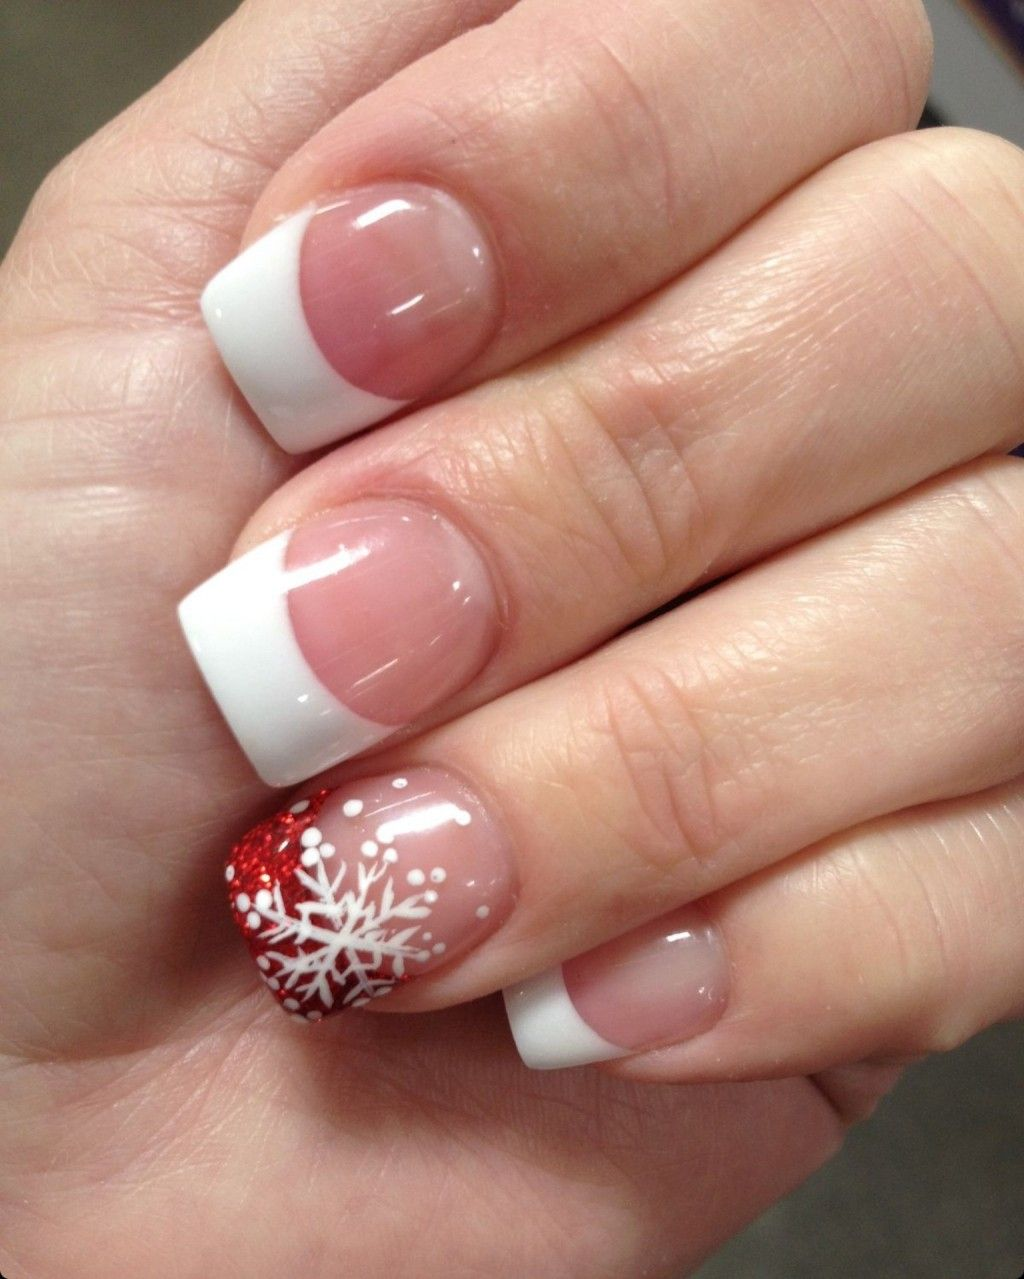 20 awesome holiday nail designs for short nails makeup 20 awesome holiday nail designs for short nails prinsesfo Image collections